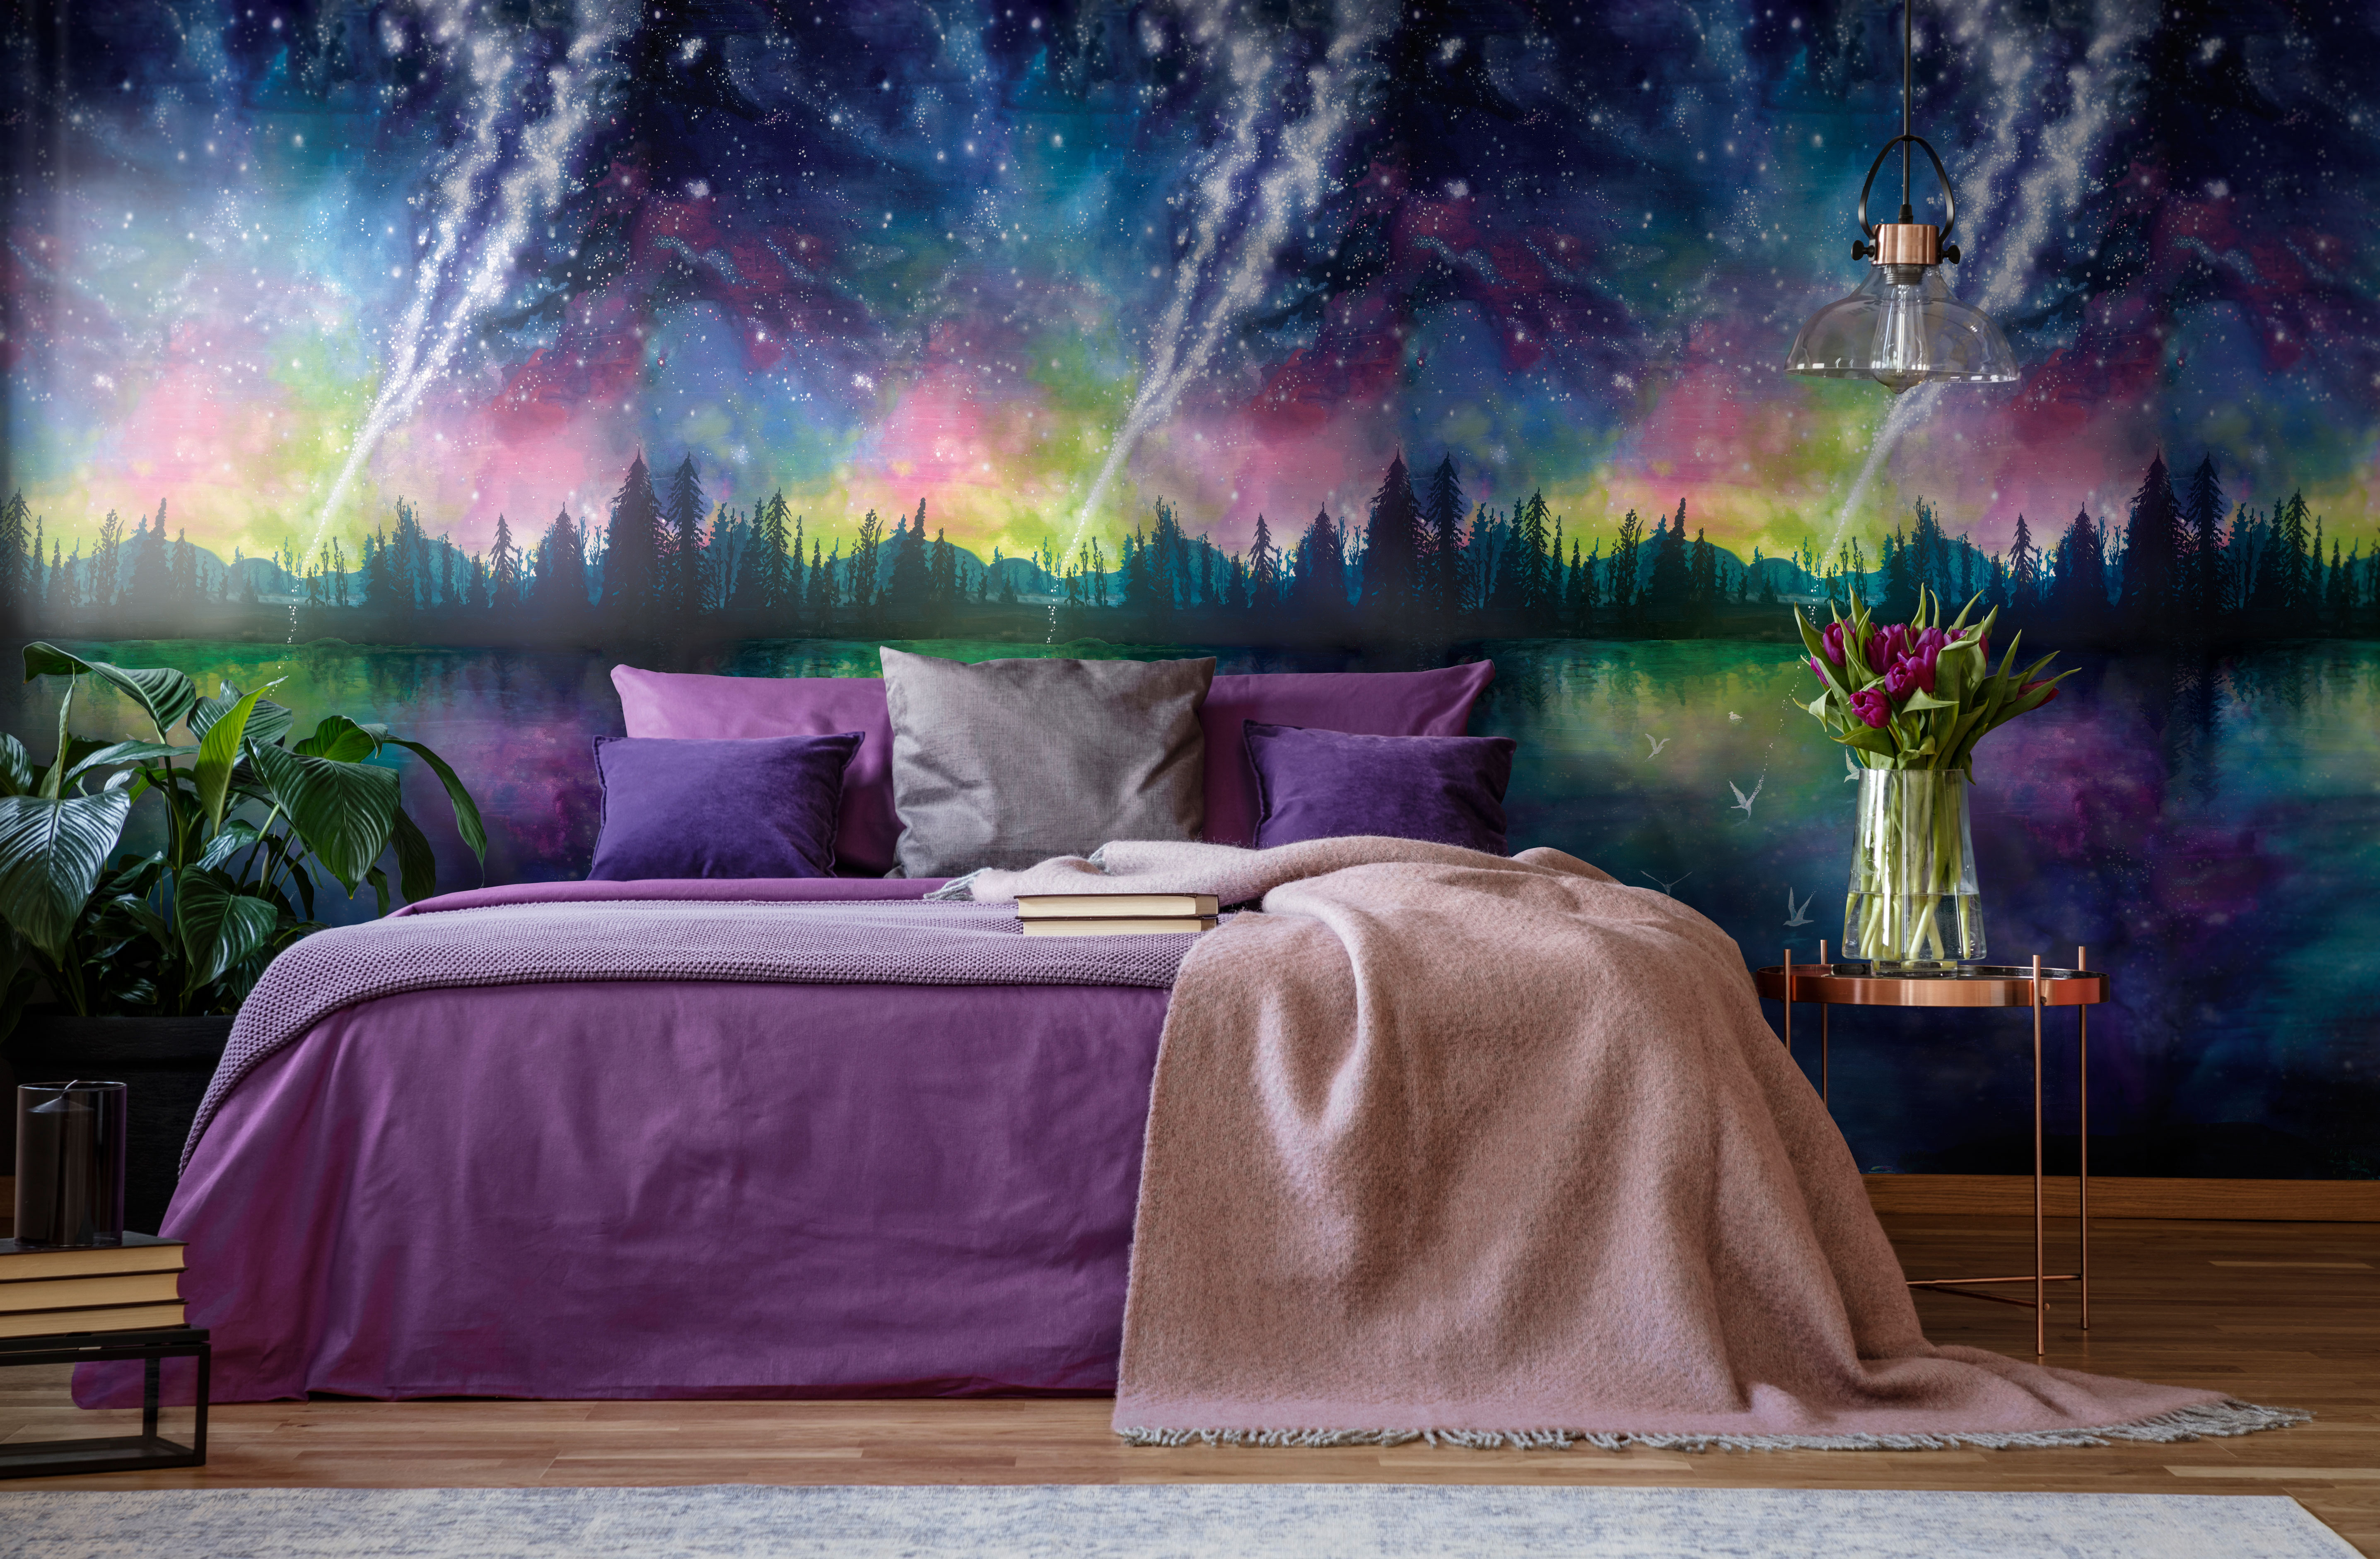 night statement watercolour galaxy interior wall mural wall paper